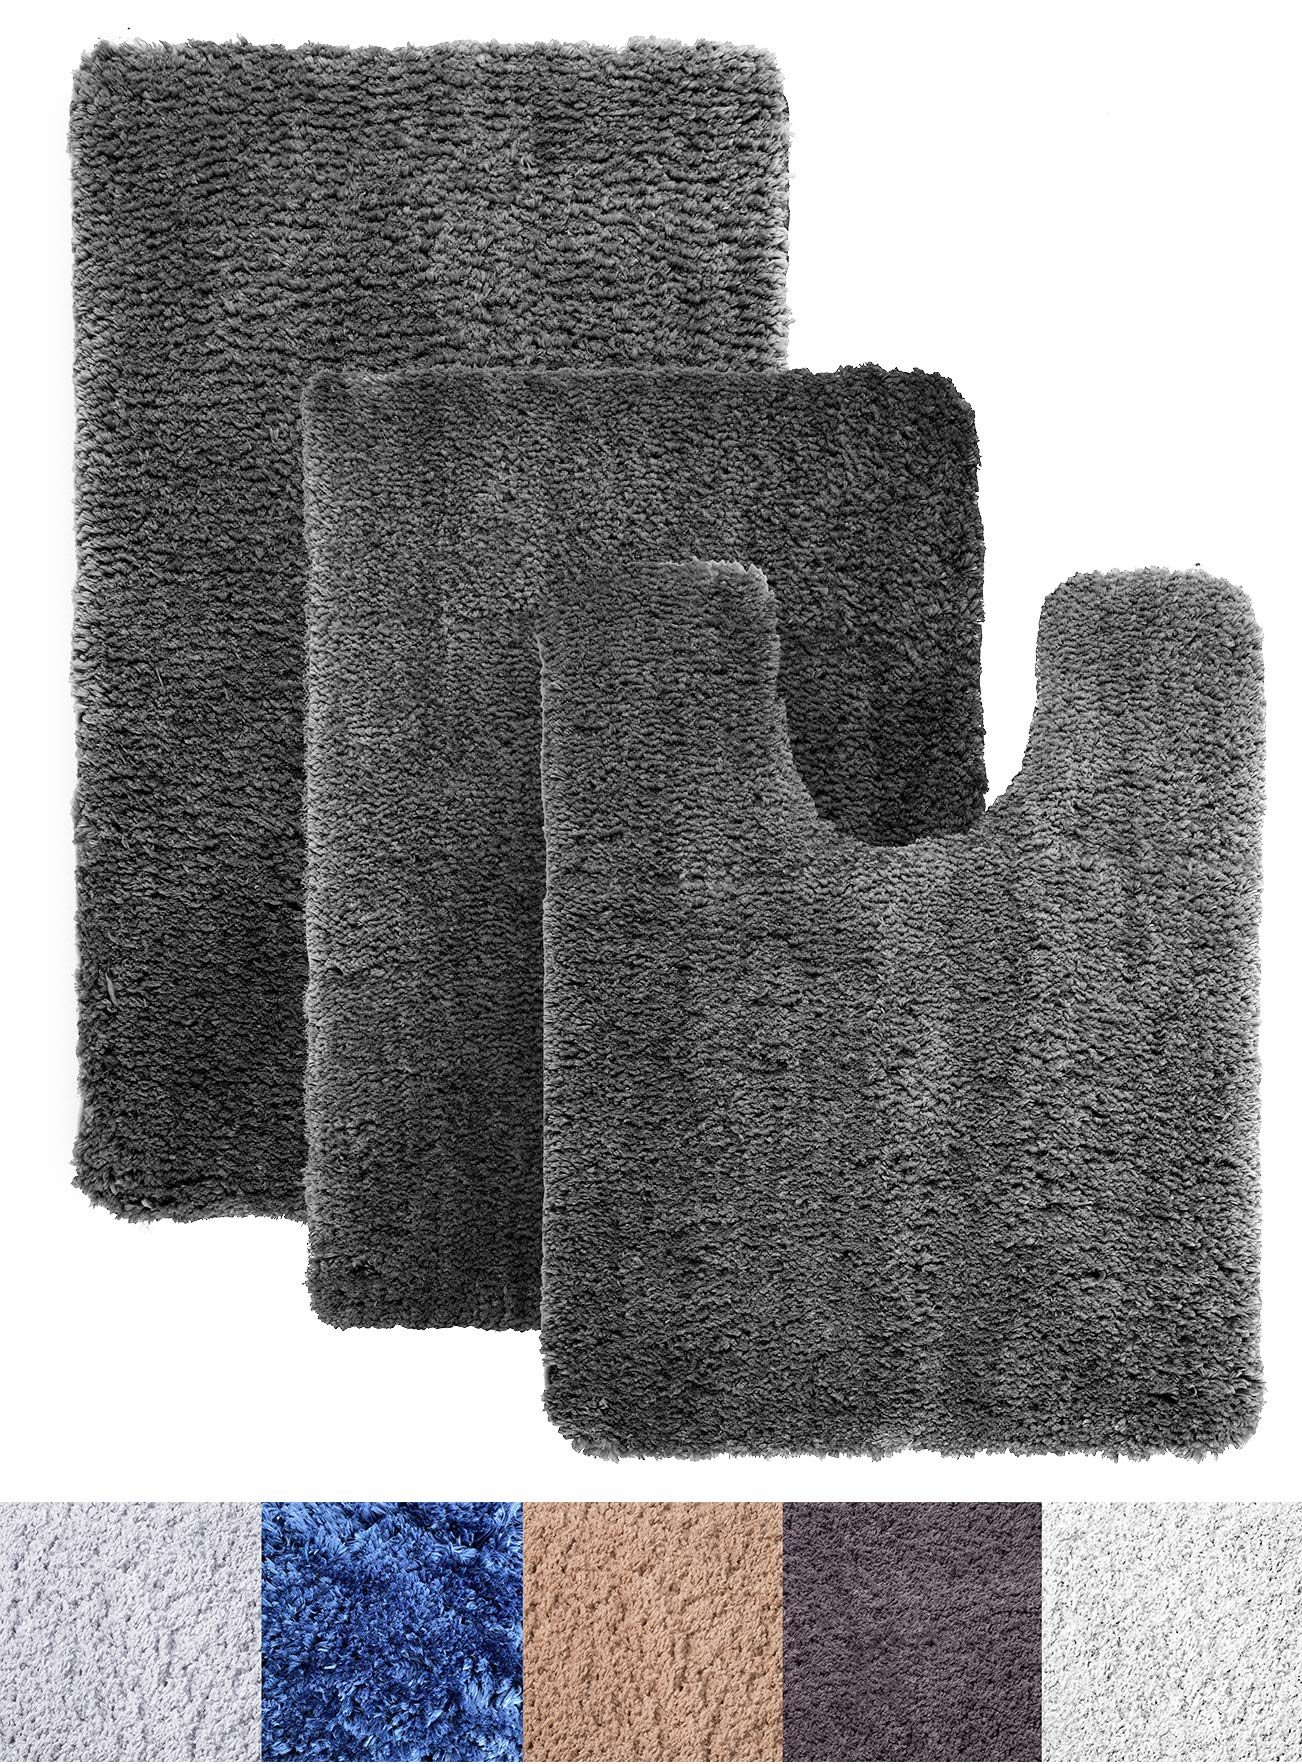 Luxe Rug Dark Gray Plush Bathroom Rugs Bath Shower Mat Set w Non Slip Microfiber Super Absorbent Rug Alfombras para Baños (3, Dark Gray)